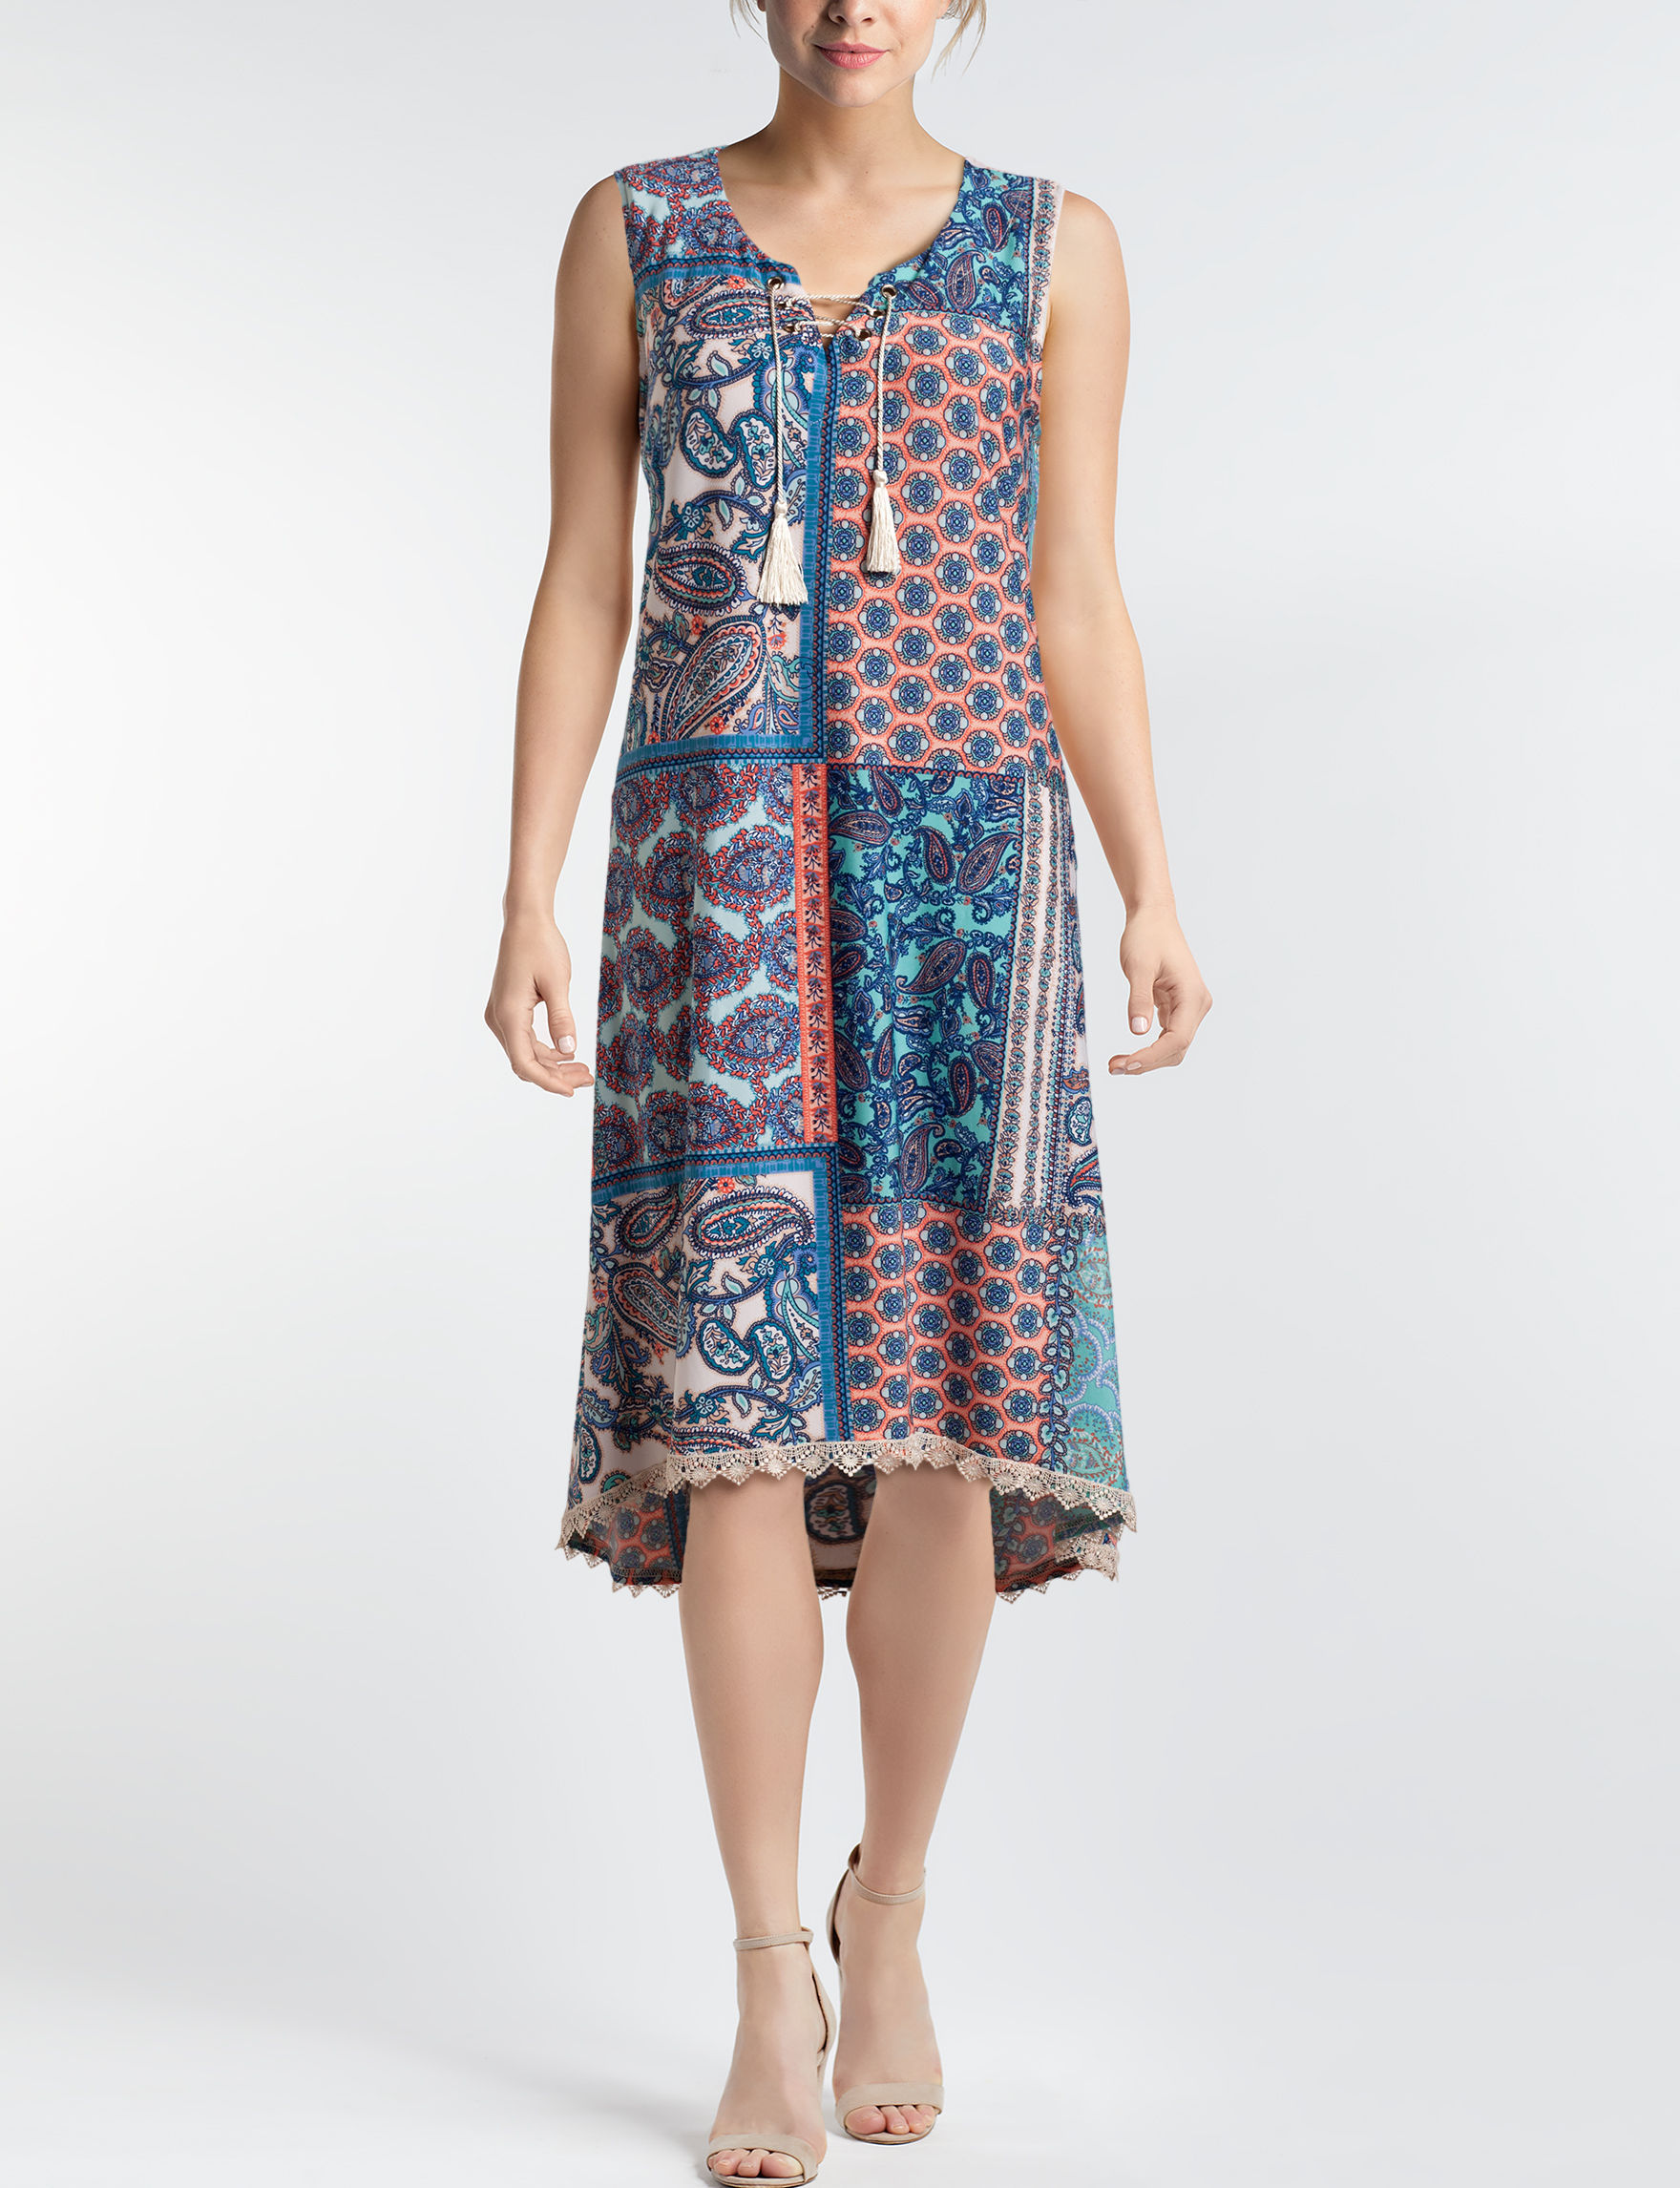 One World Blue Multi Everyday & Casual